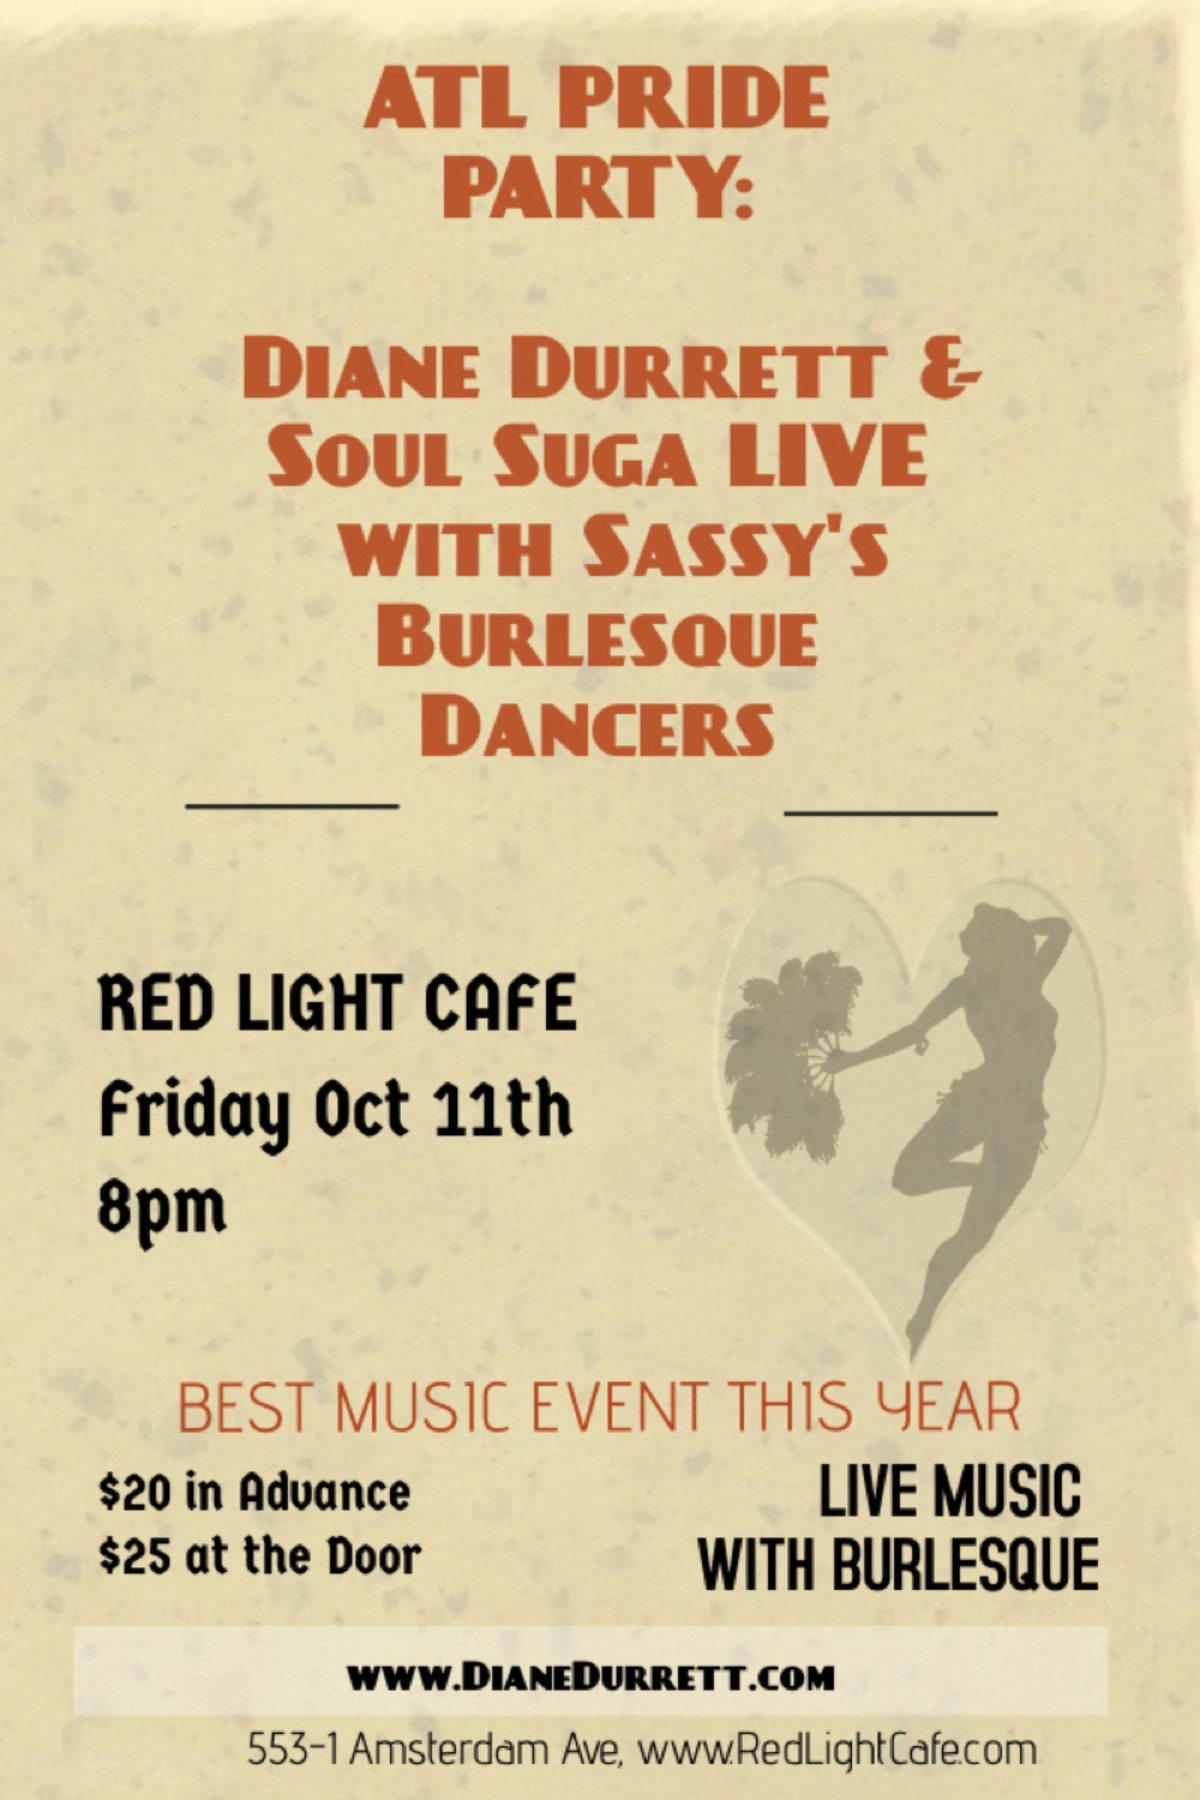 Atlanta Pride Party w/ Diane Durrett & Soul Suga + Sassy's Burlesque — October 11, 2019 — Red Light Café, Atlanta, GA